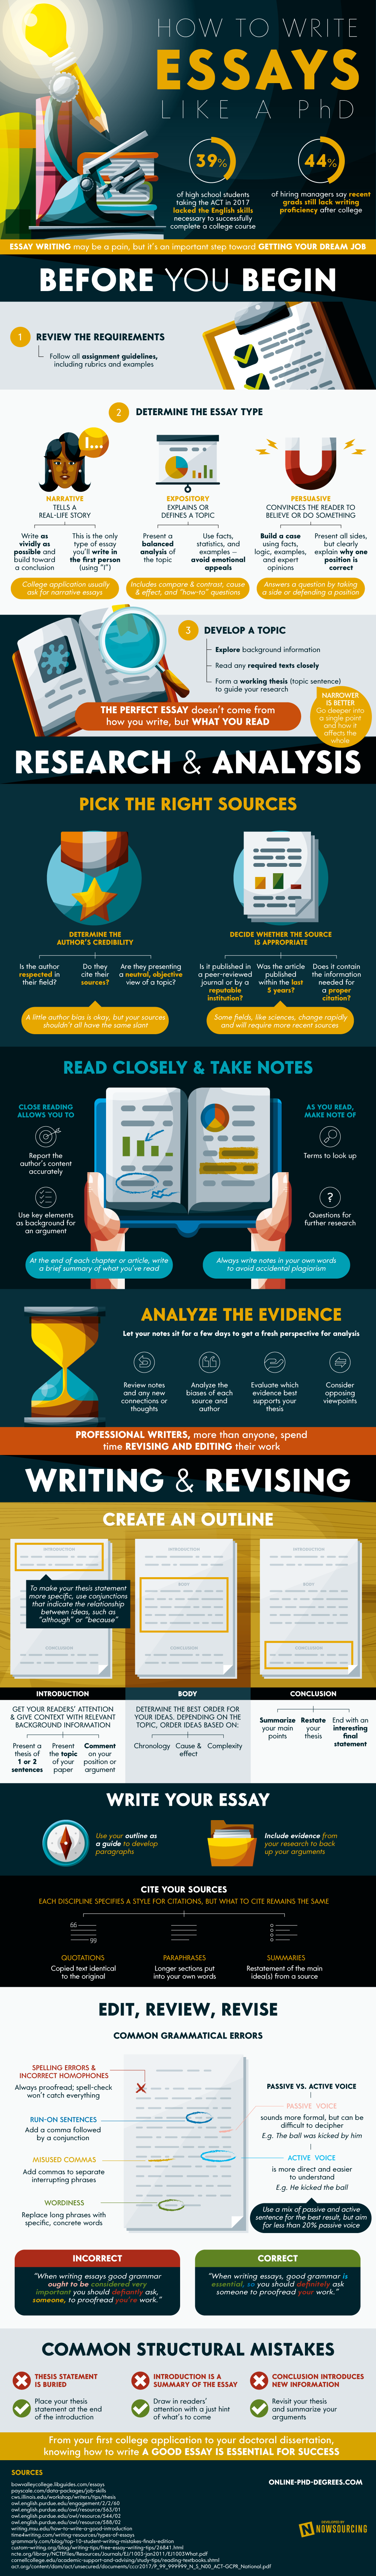 How to Write a Perfect Essay Like a Ph.D. #infographic